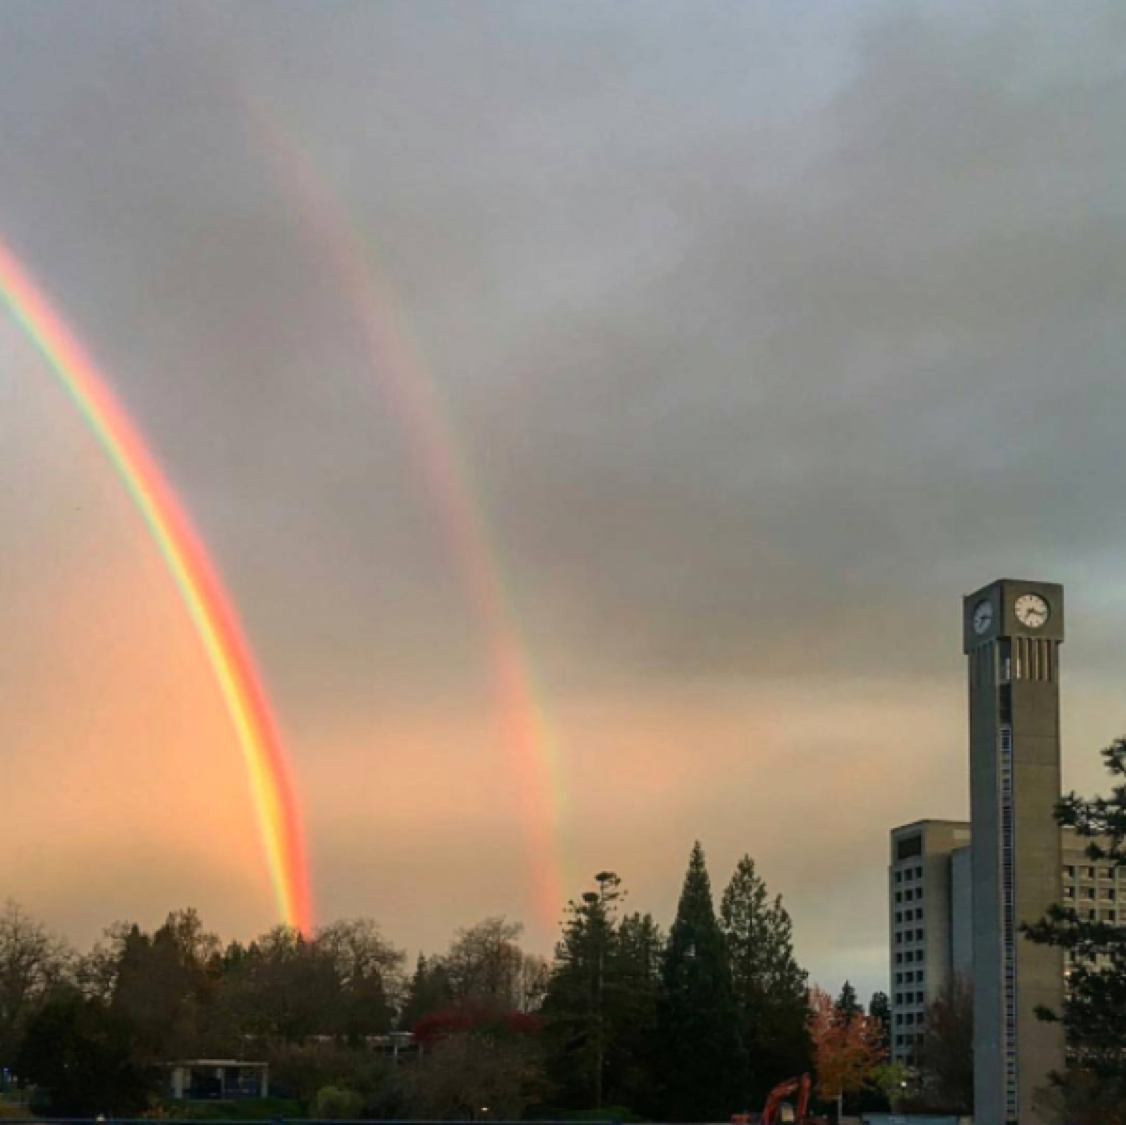 It's a full on double rainbow over campus! ???? Photo by @ubclibrary via @ubcsauderschool